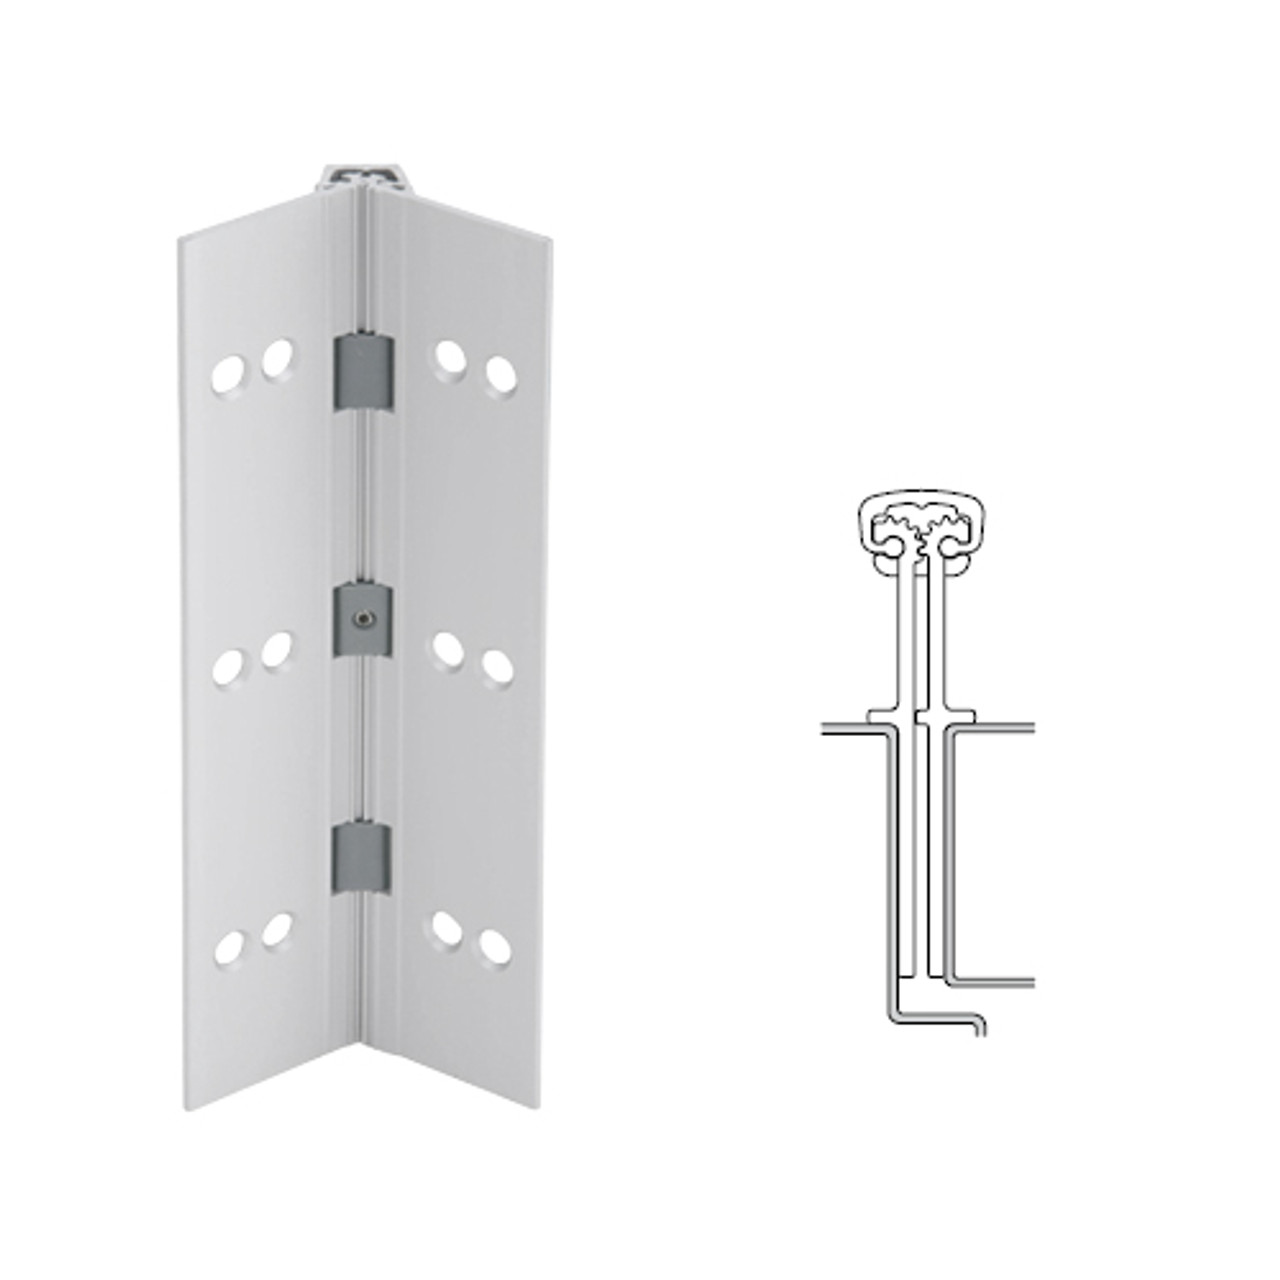 040XY-US28-83-SECWDHM IVES Full Mortise Continuous Geared Hinges with Security Screws - Hex Pin Drive in Satin Aluminum